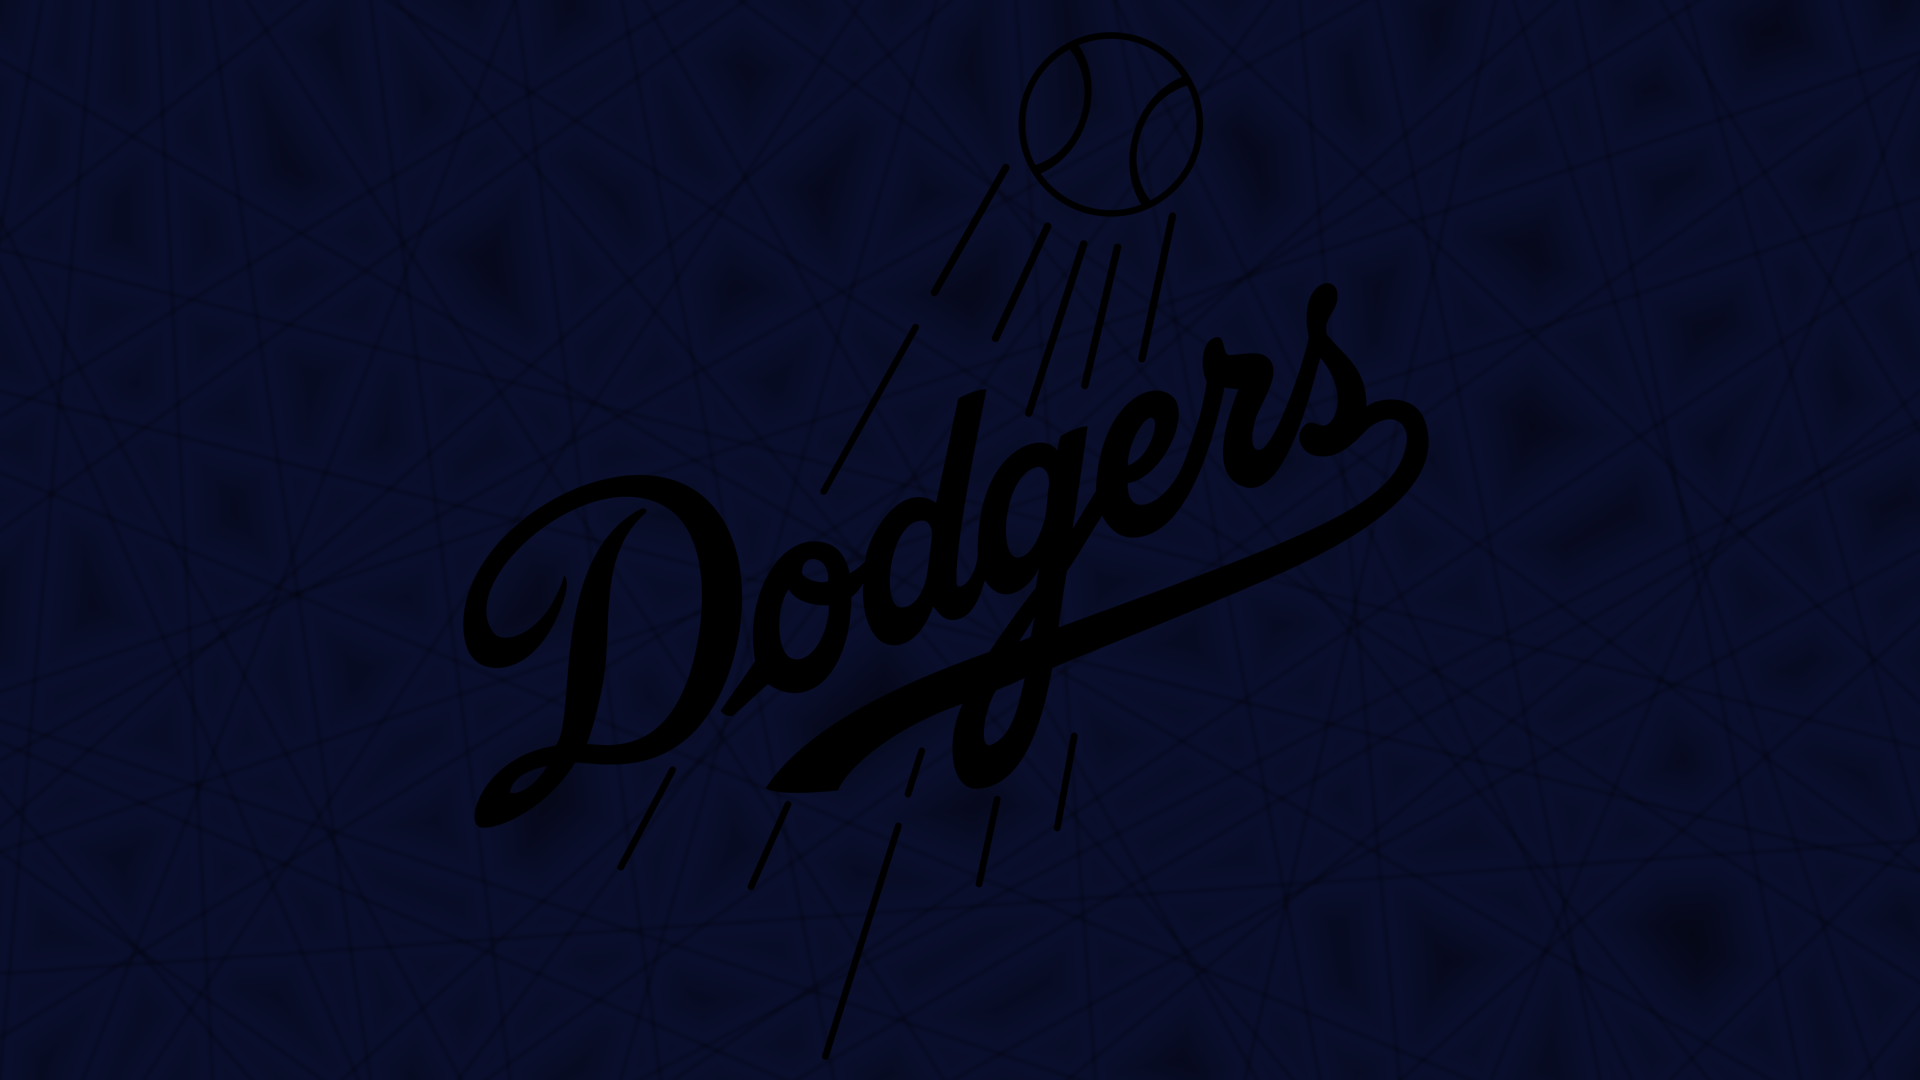 HD Los Angeles Dodgers Wallpapers HQ / Wallpapers Database